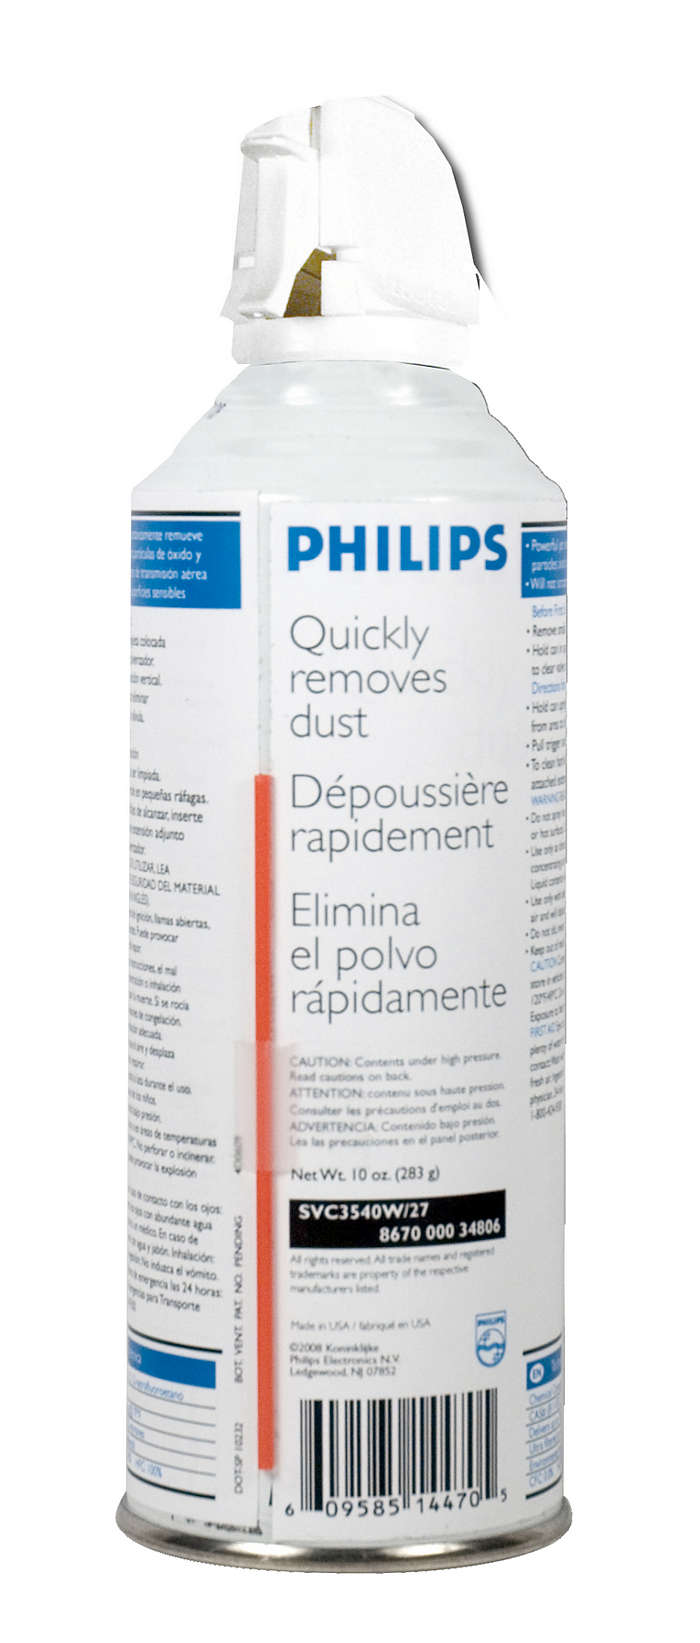 Quickly and safely removes dust